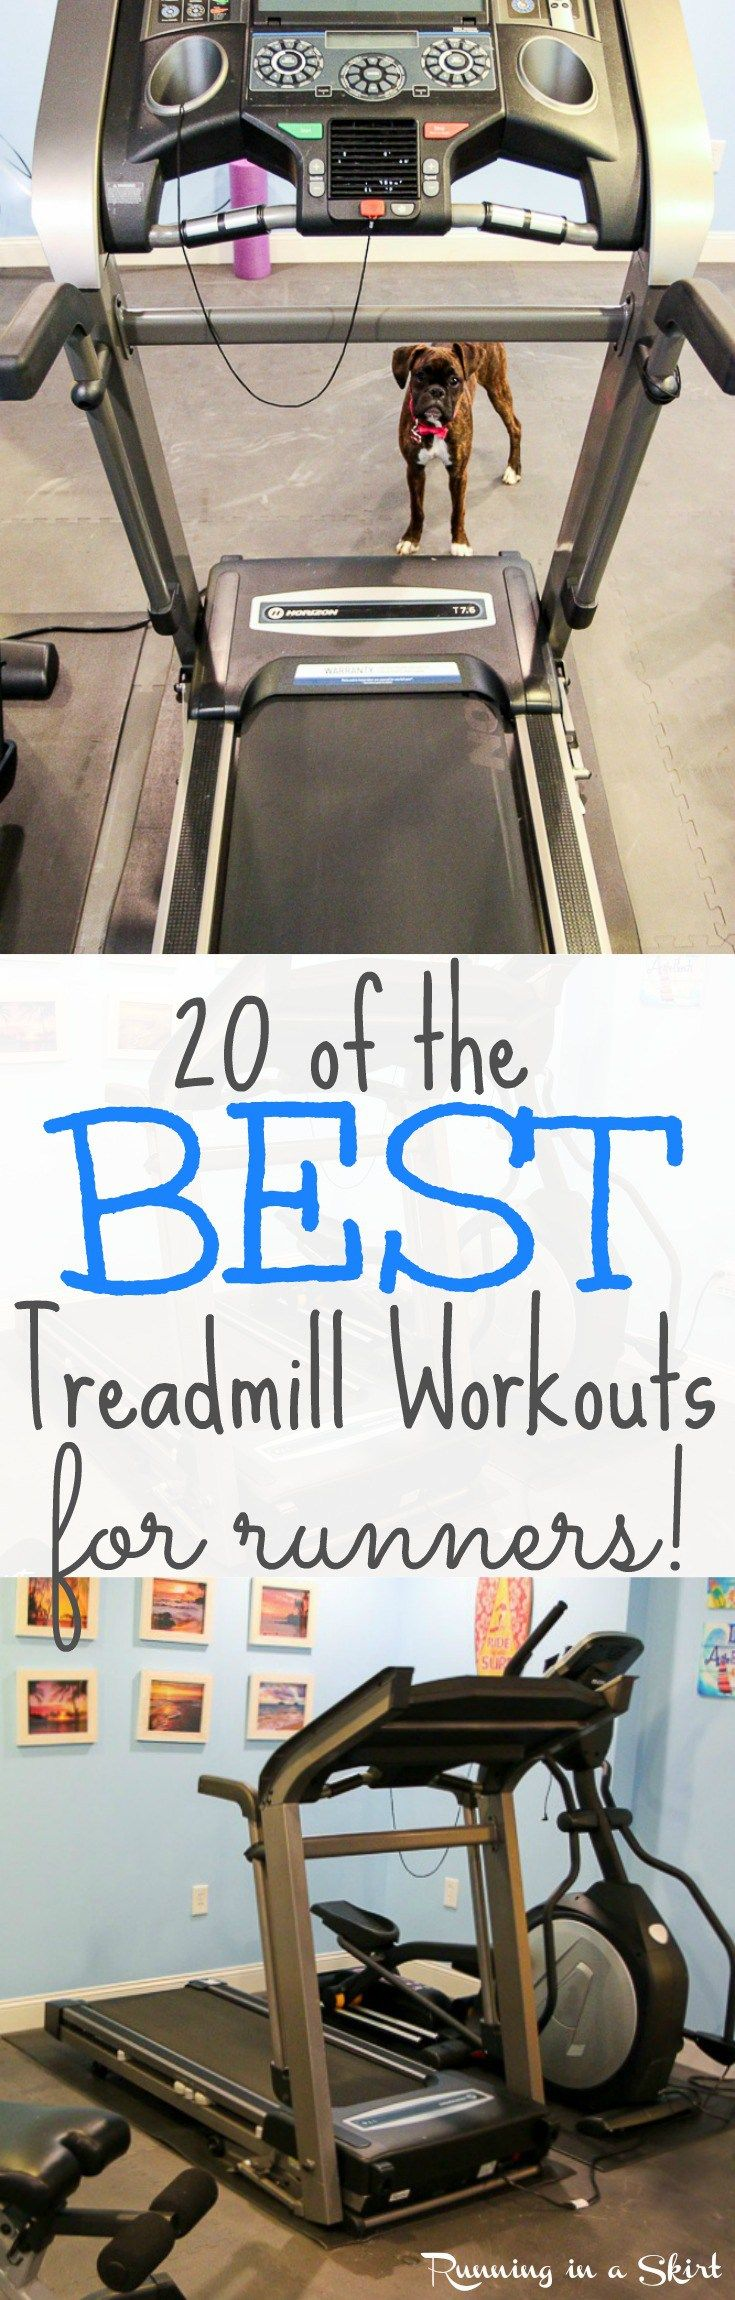 20 of the Best Treadmill Workouts for Runners /Running in a Skirt